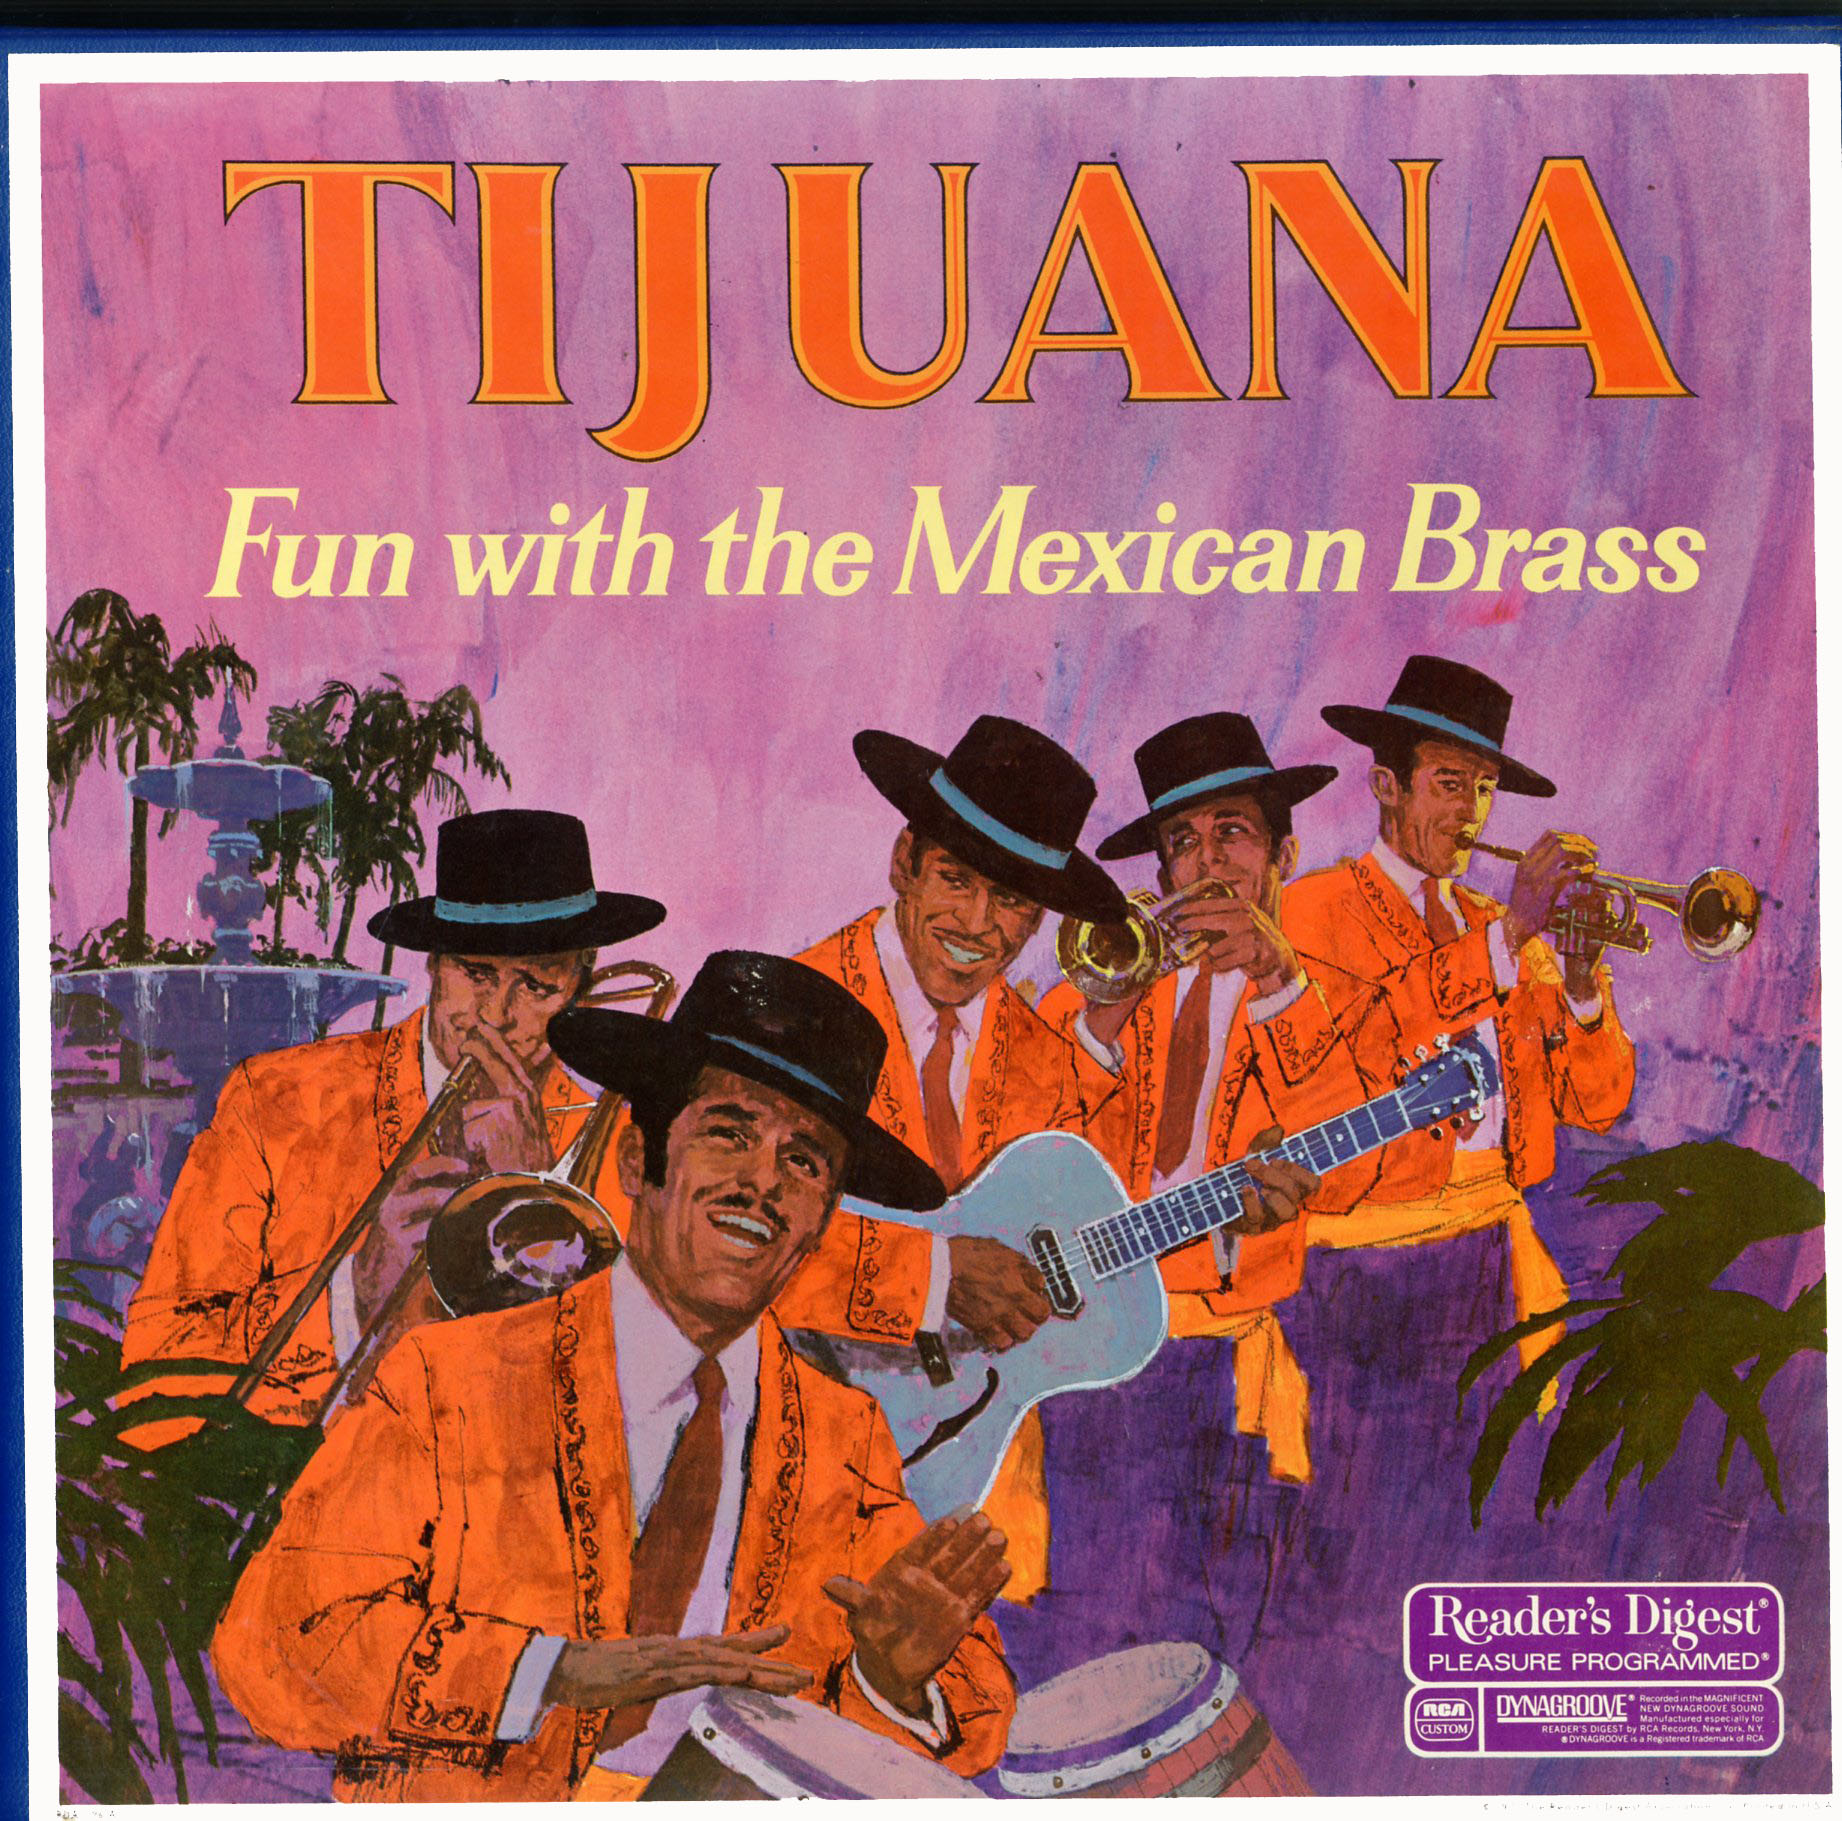 RDA96 - Tijuana Fun with the Mexican Brass on CD